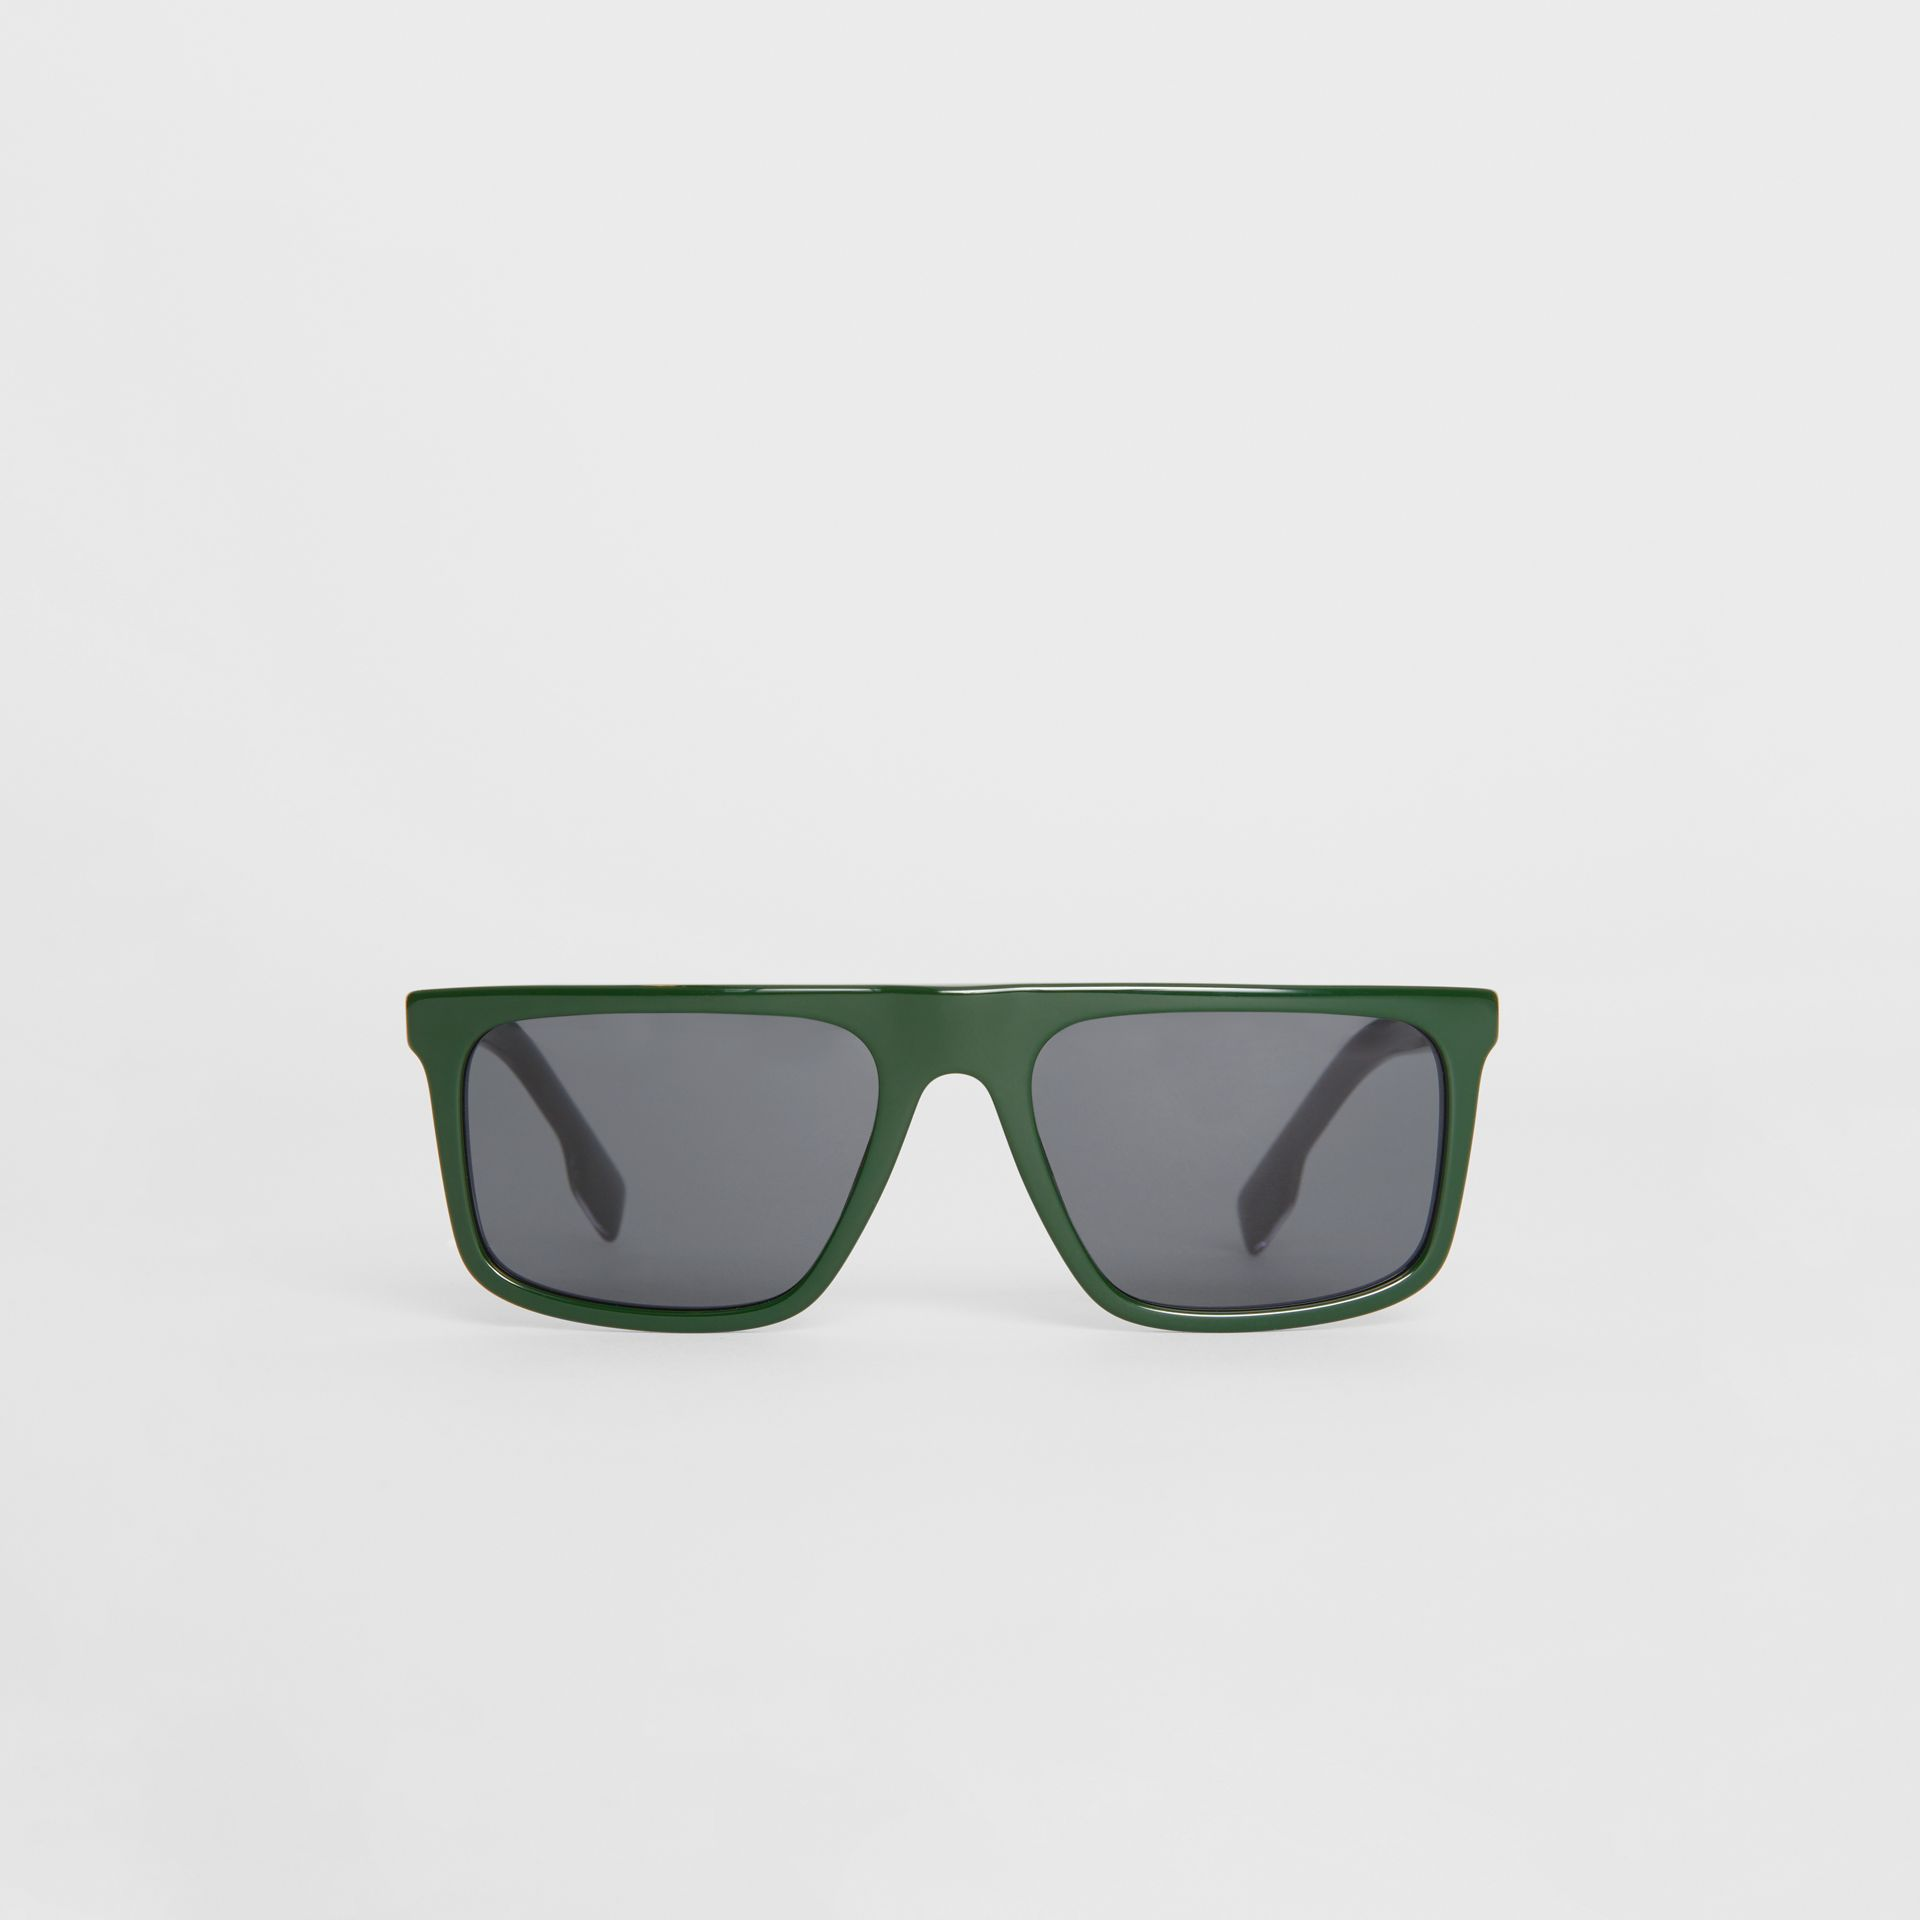 Straight-brow Sunglasses in Green - Men | Burberry - gallery image 0